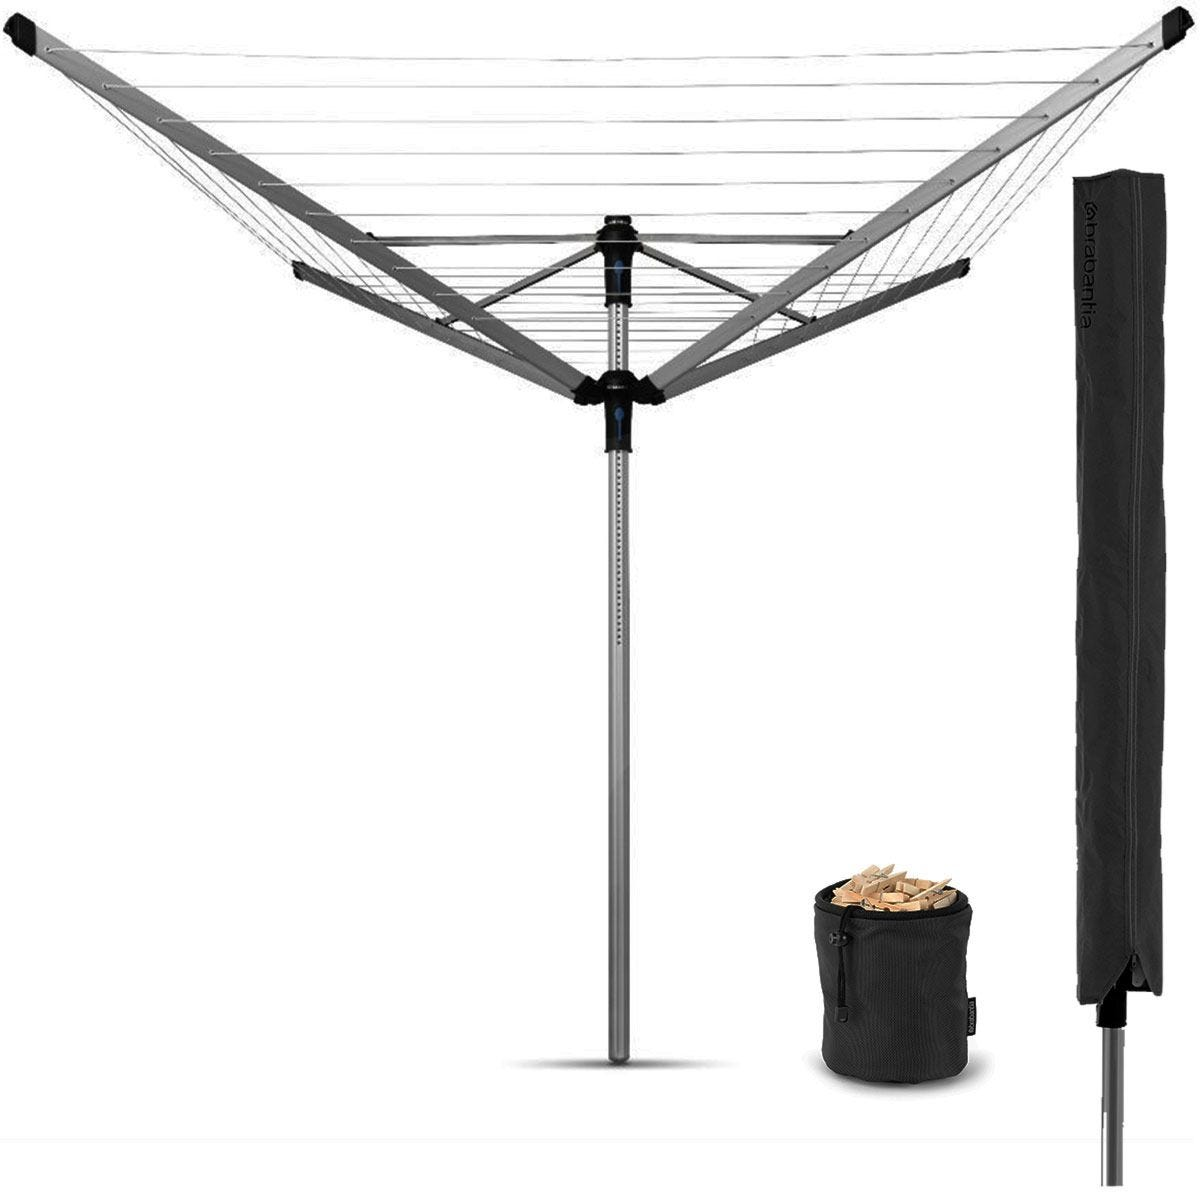 Brabantia Lift-O-Matic Advance 50m 4-Arm Rotary Airer with Cover and Peg Bag